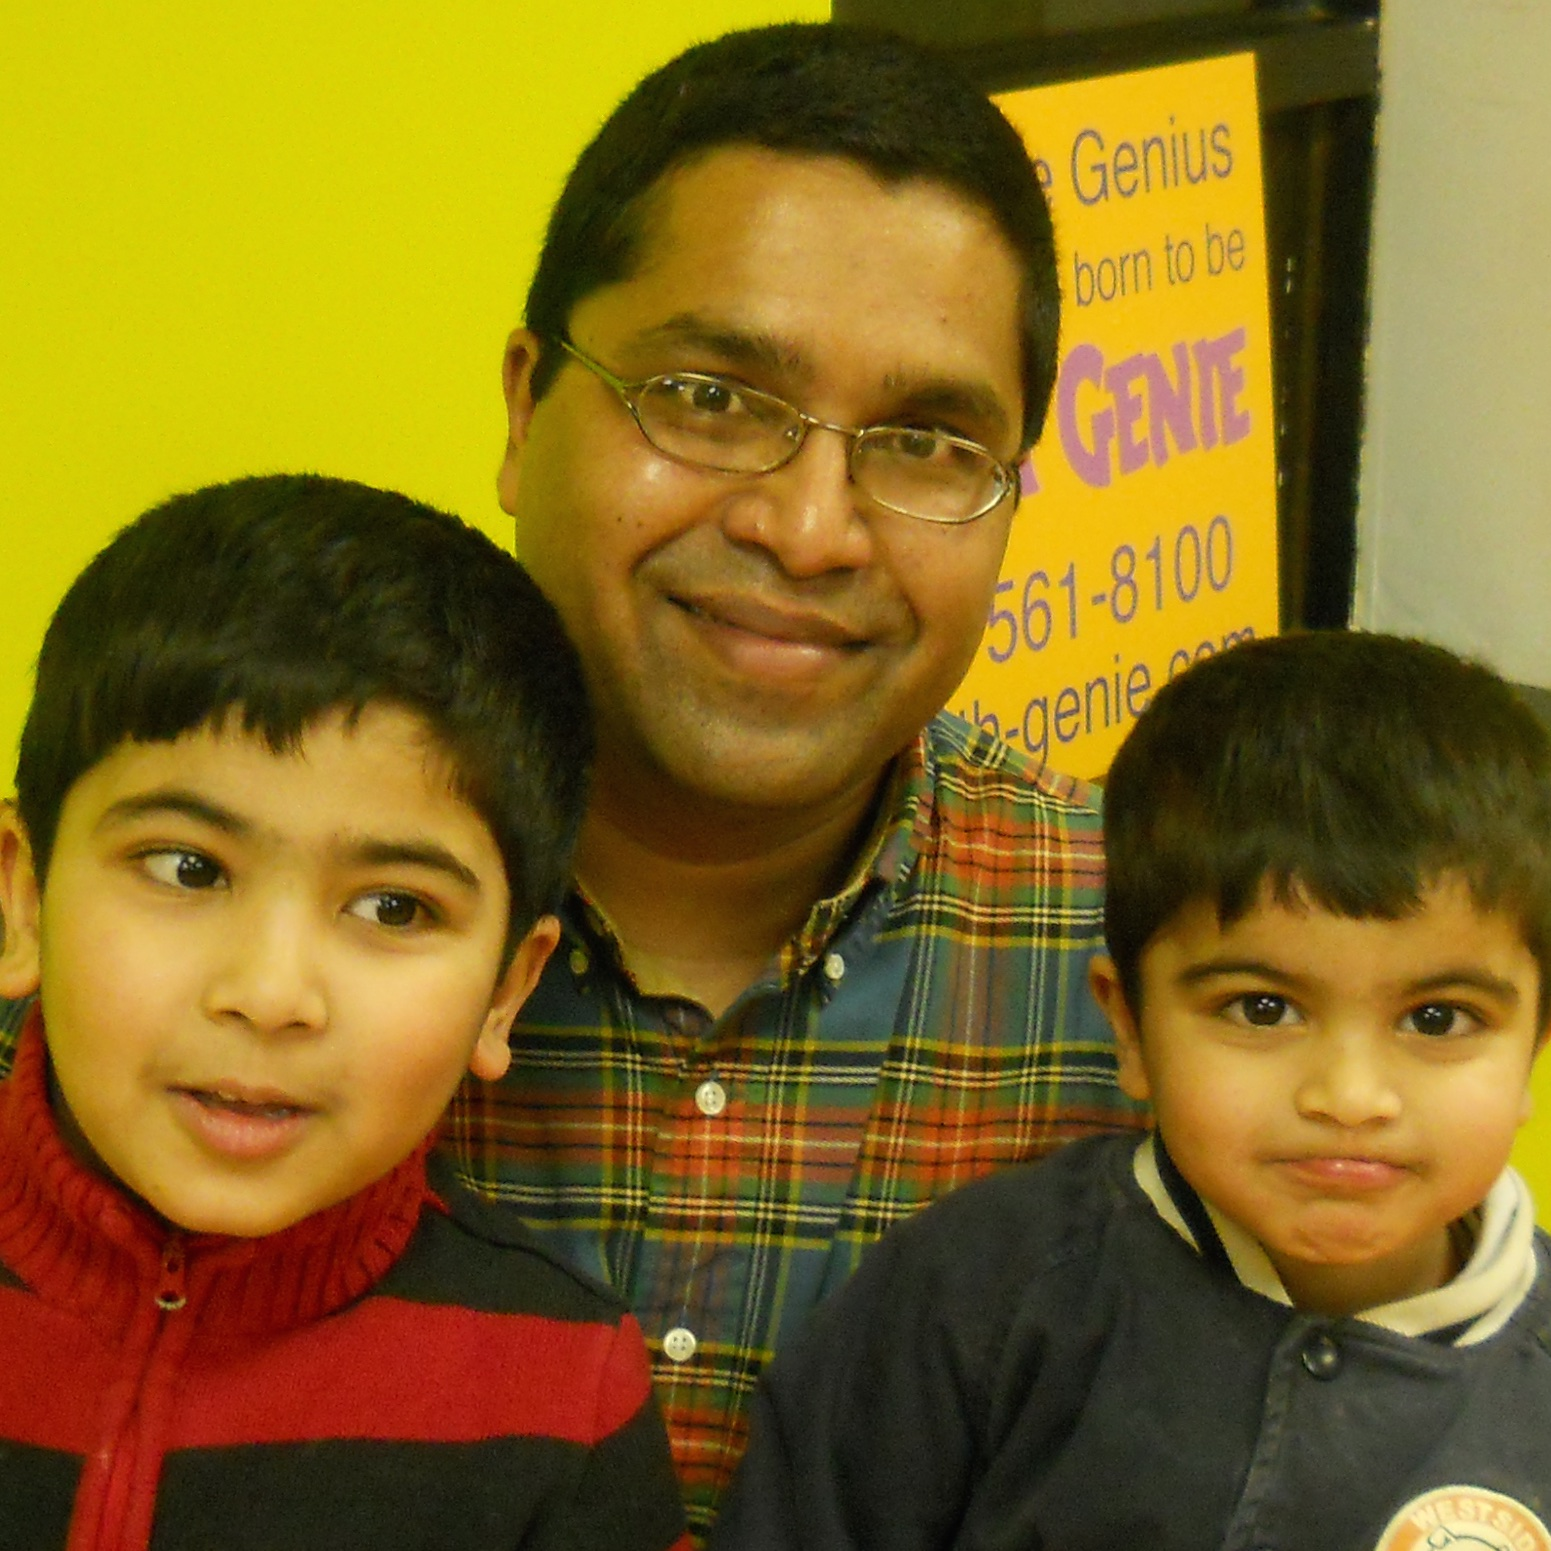 Math Genie Success-Parent sees a great deal of progess in child after only a few months at Math Genie versus Kumon